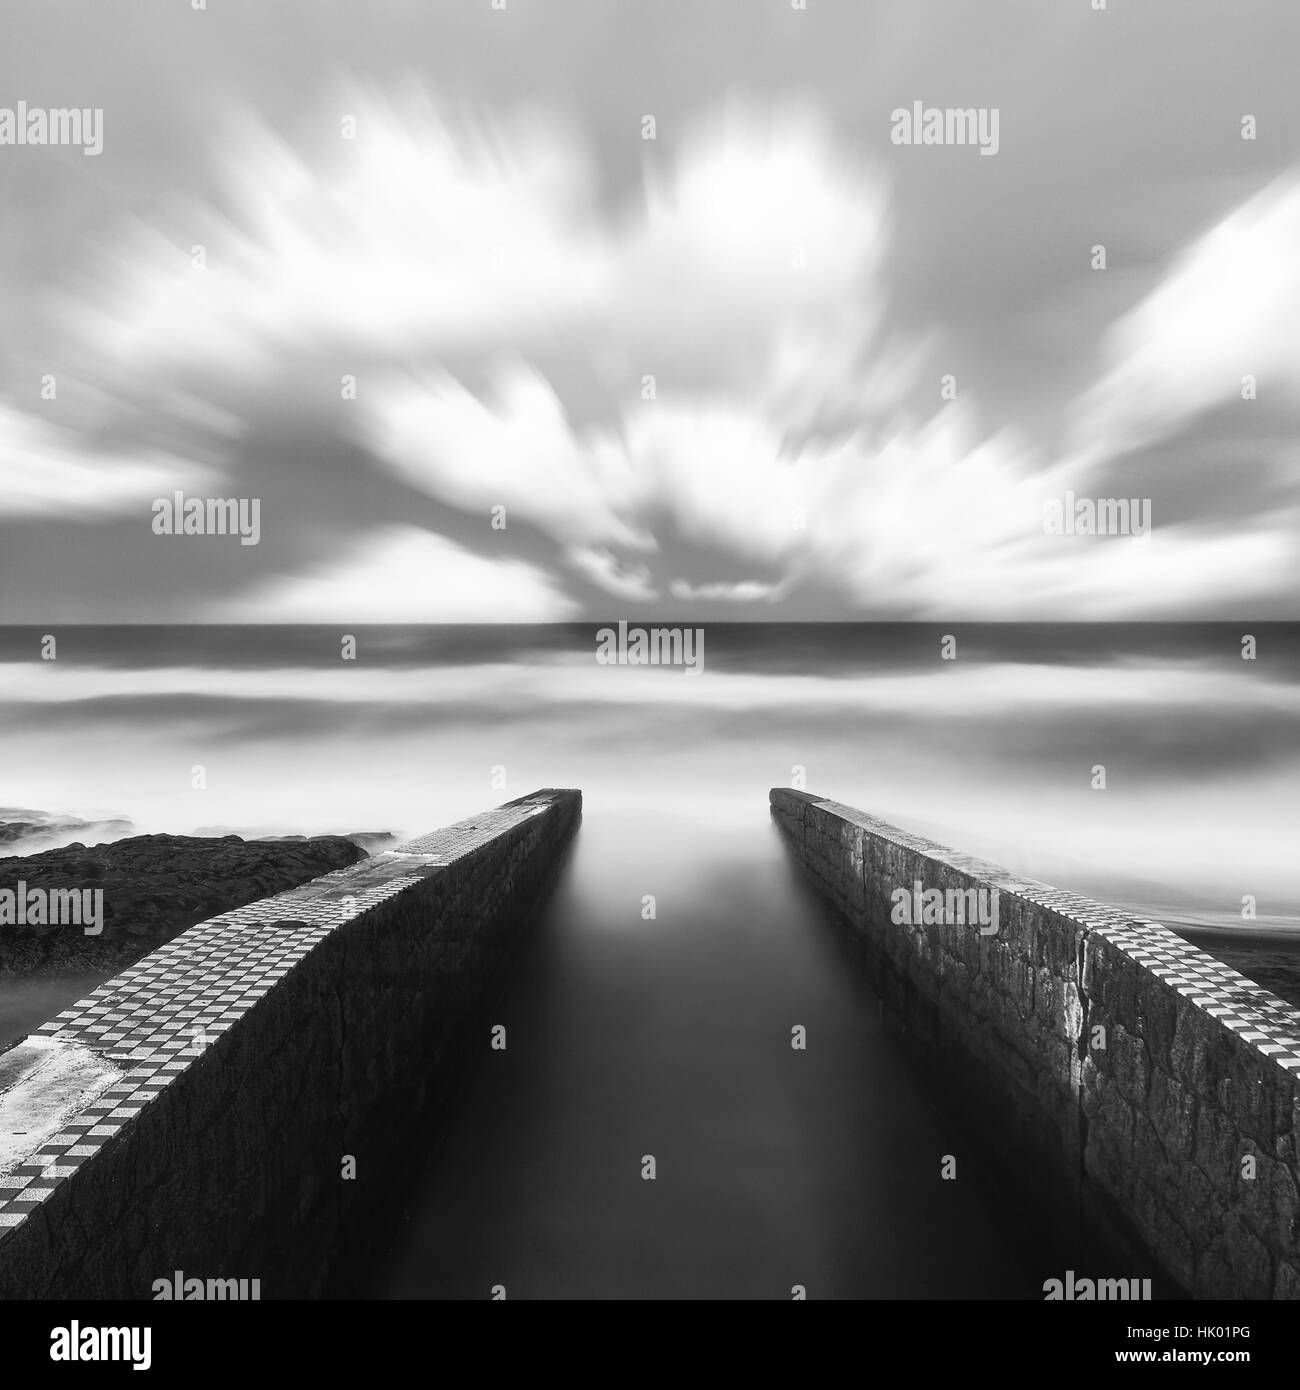 Silky water and clouds by a pier in Inamuragasaki, Kanagawa Prefecture, Japan - Stock Image